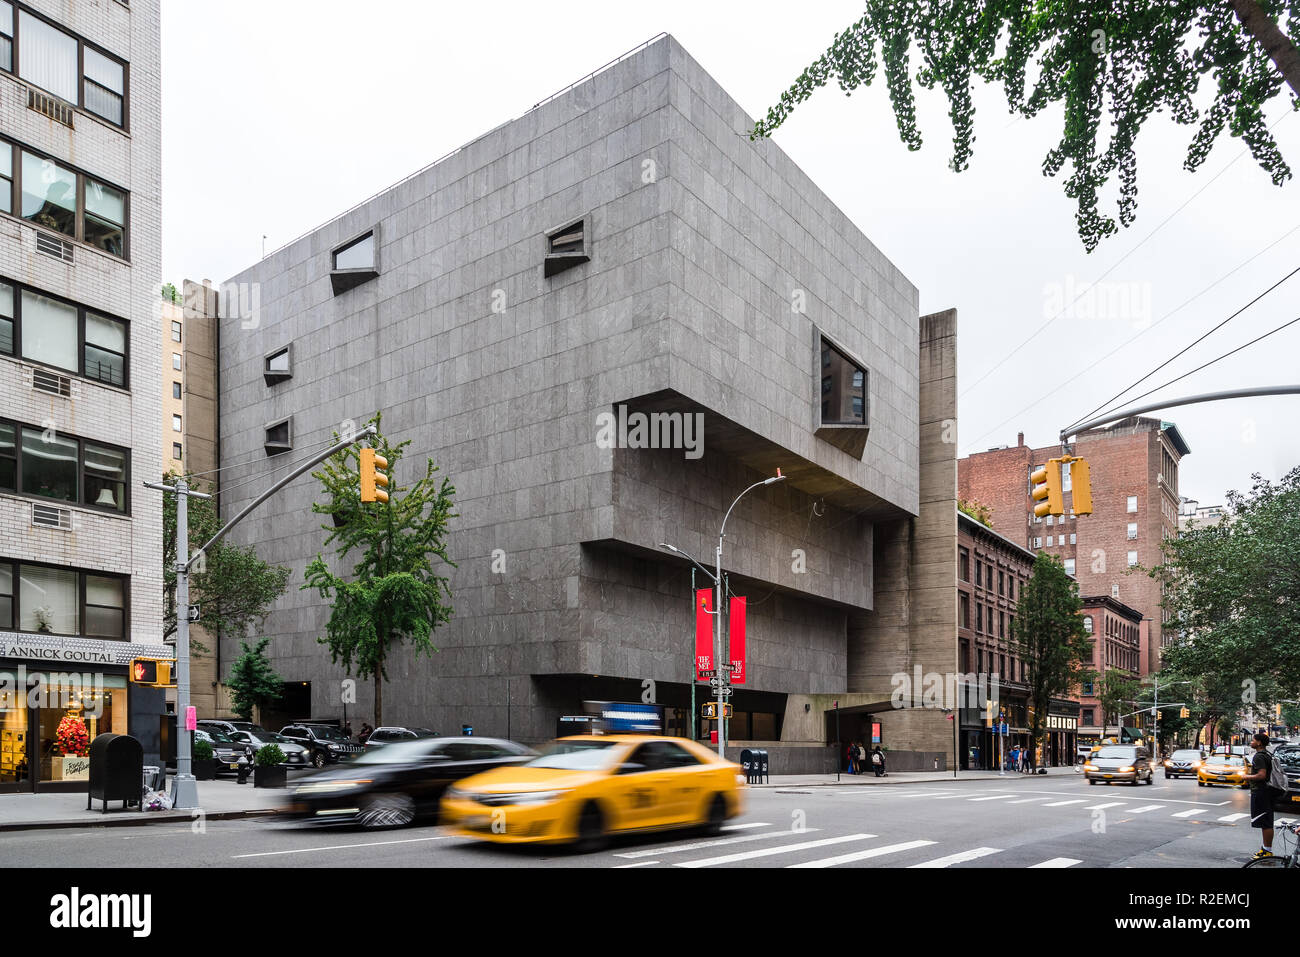 New York City, USA - June 23, 2018: The Met Breuer, exterior view. It is a museum of modern and contemporary art in Madison Avenue in the Upper East S - Stock Image